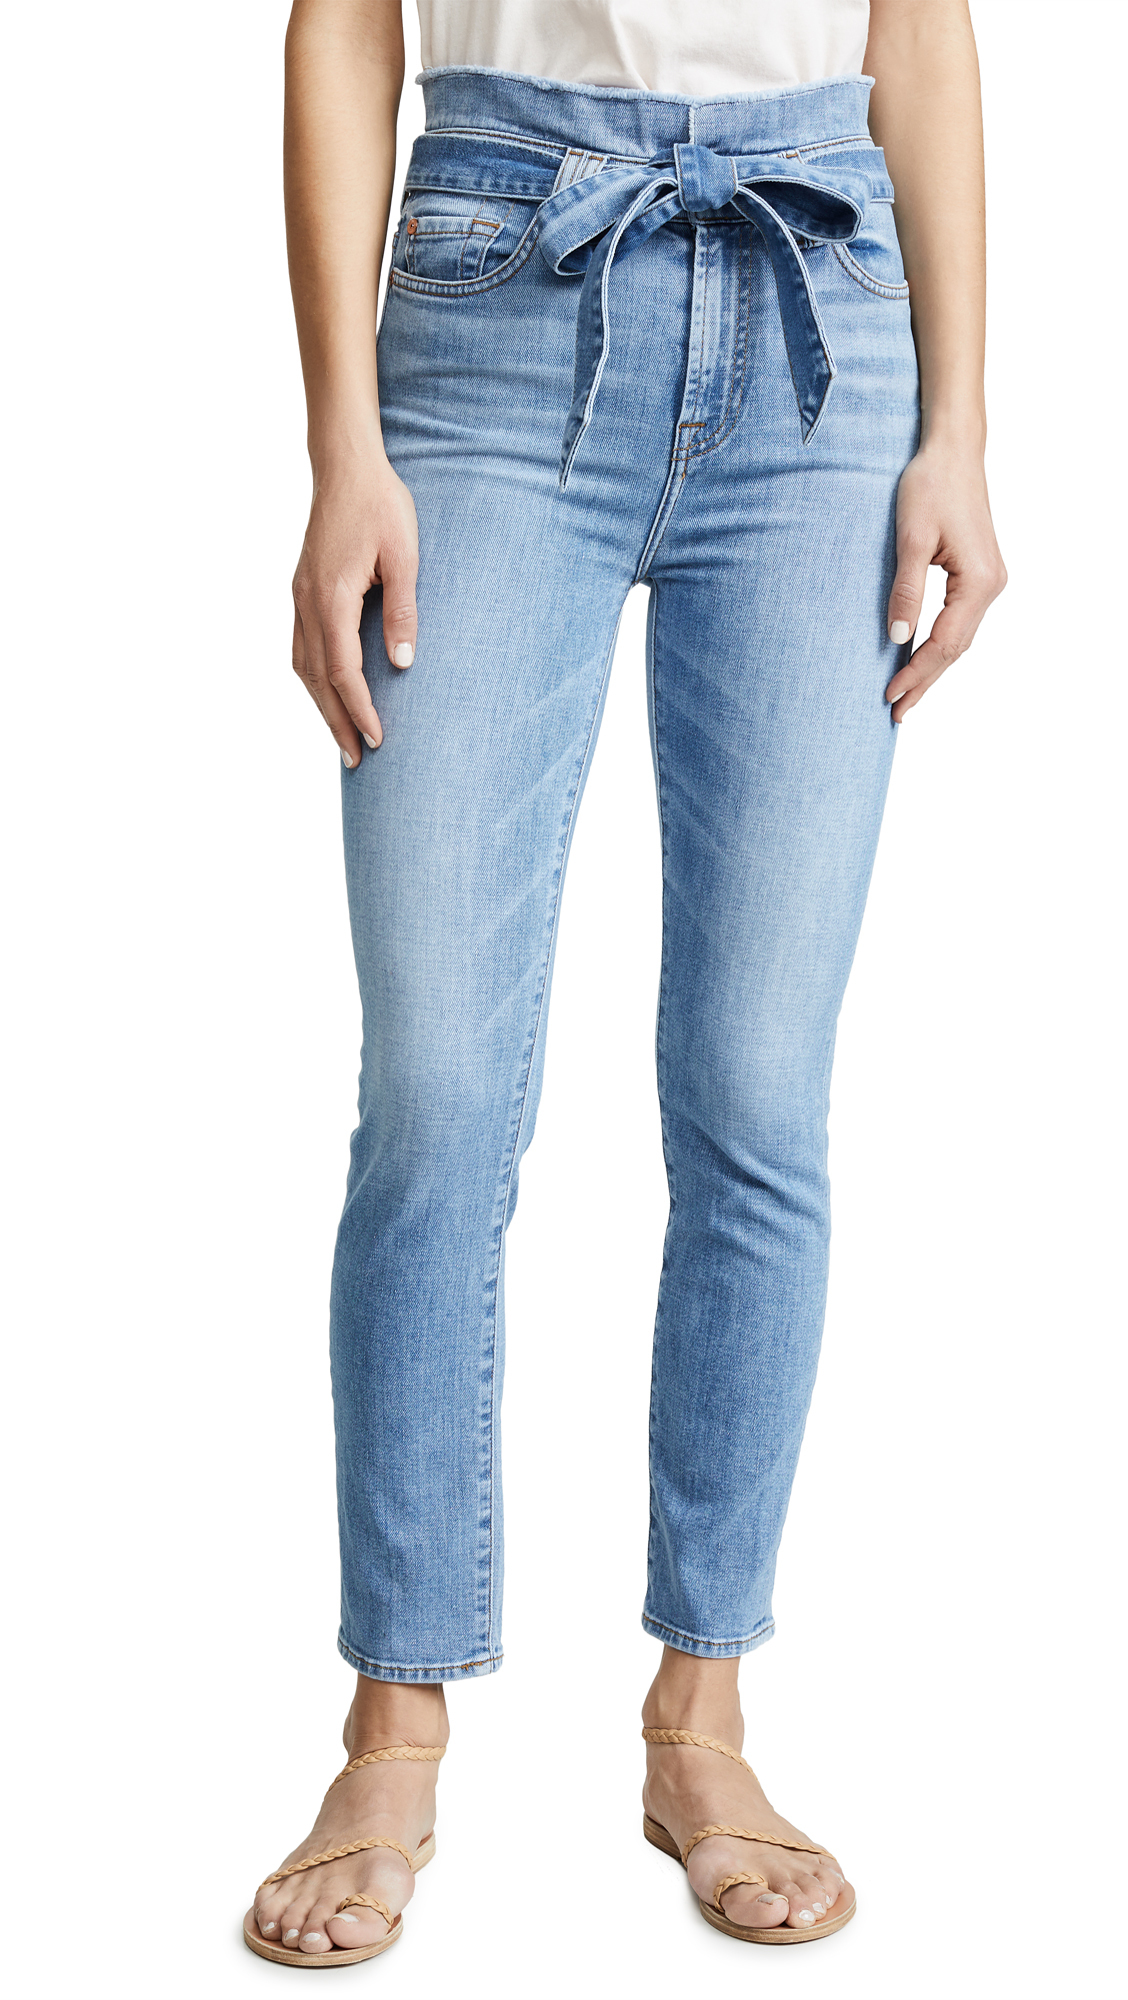 7 For All Mankind Paperbag Jeans - Bright Blue Jay